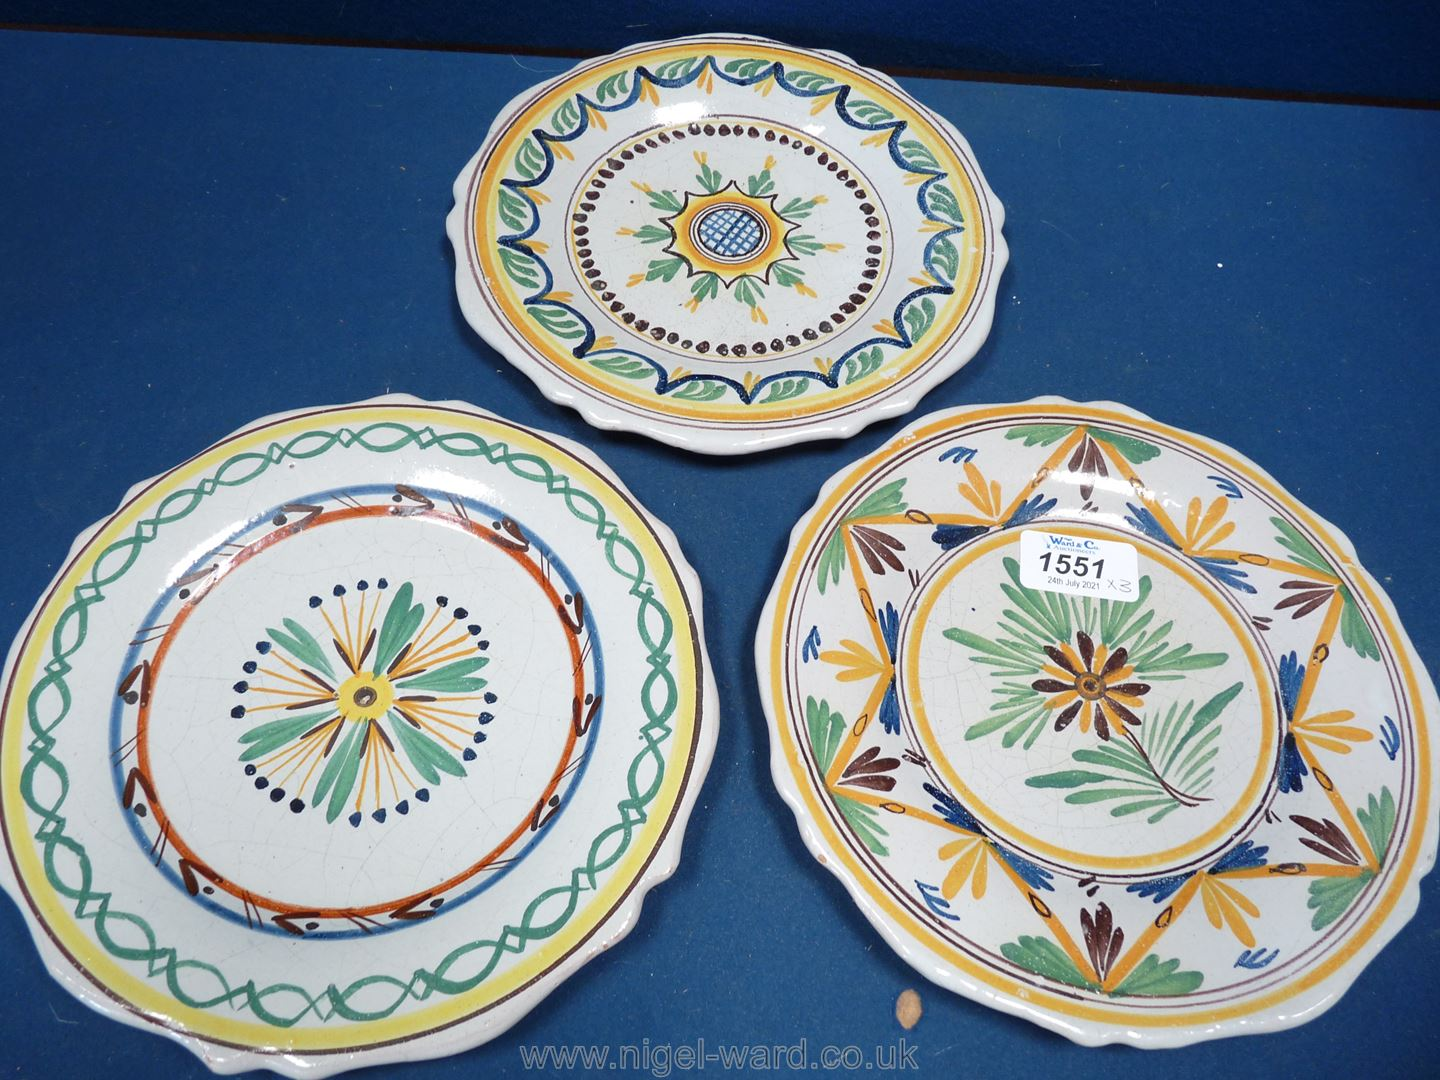 Three early 19th Century French faience plates decorated with flowers and stylised motifs,